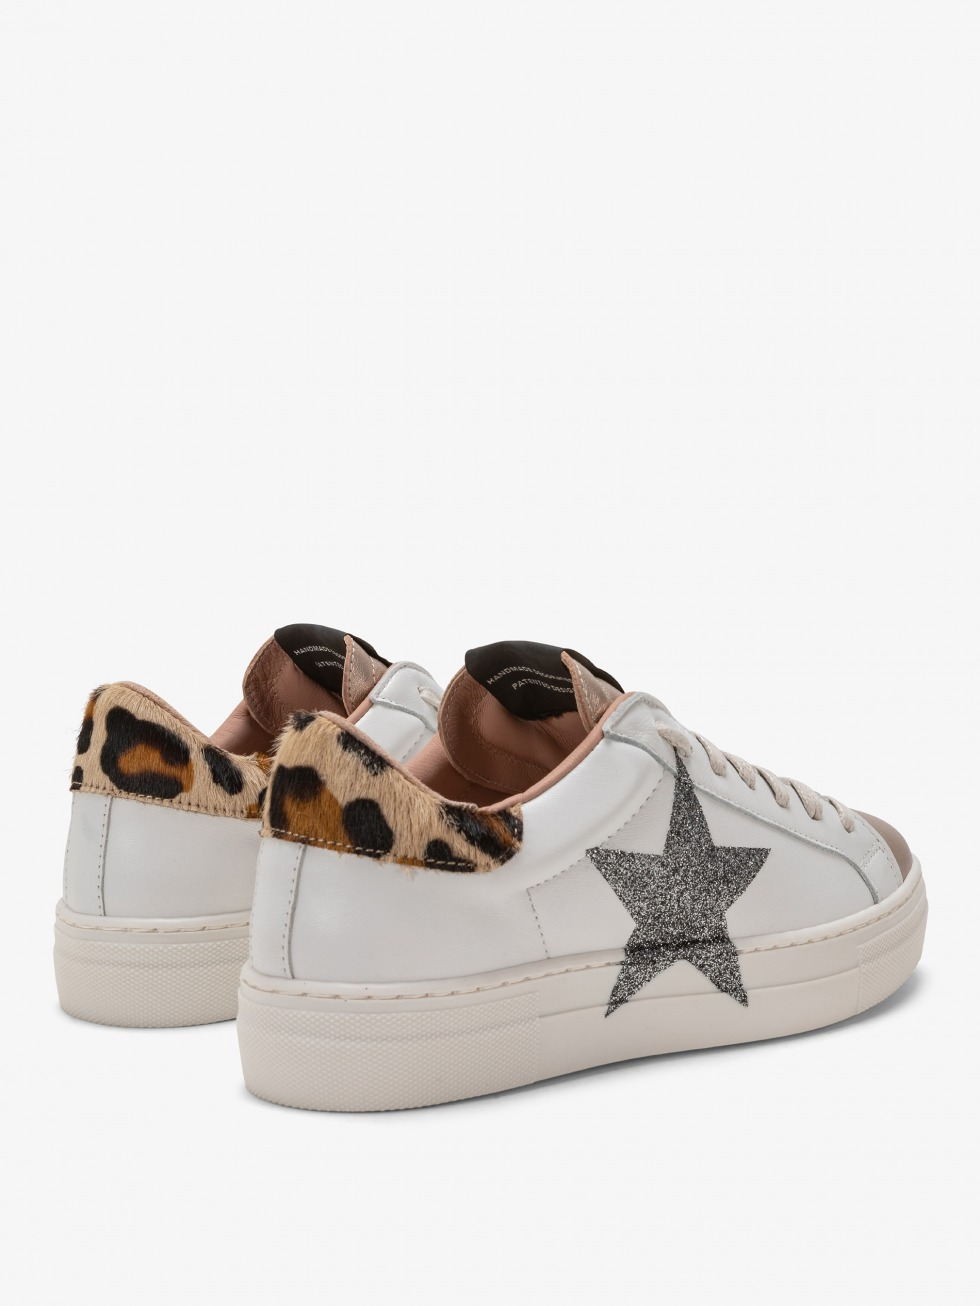 Martini Africa Gold Sneakers - Glitter Star